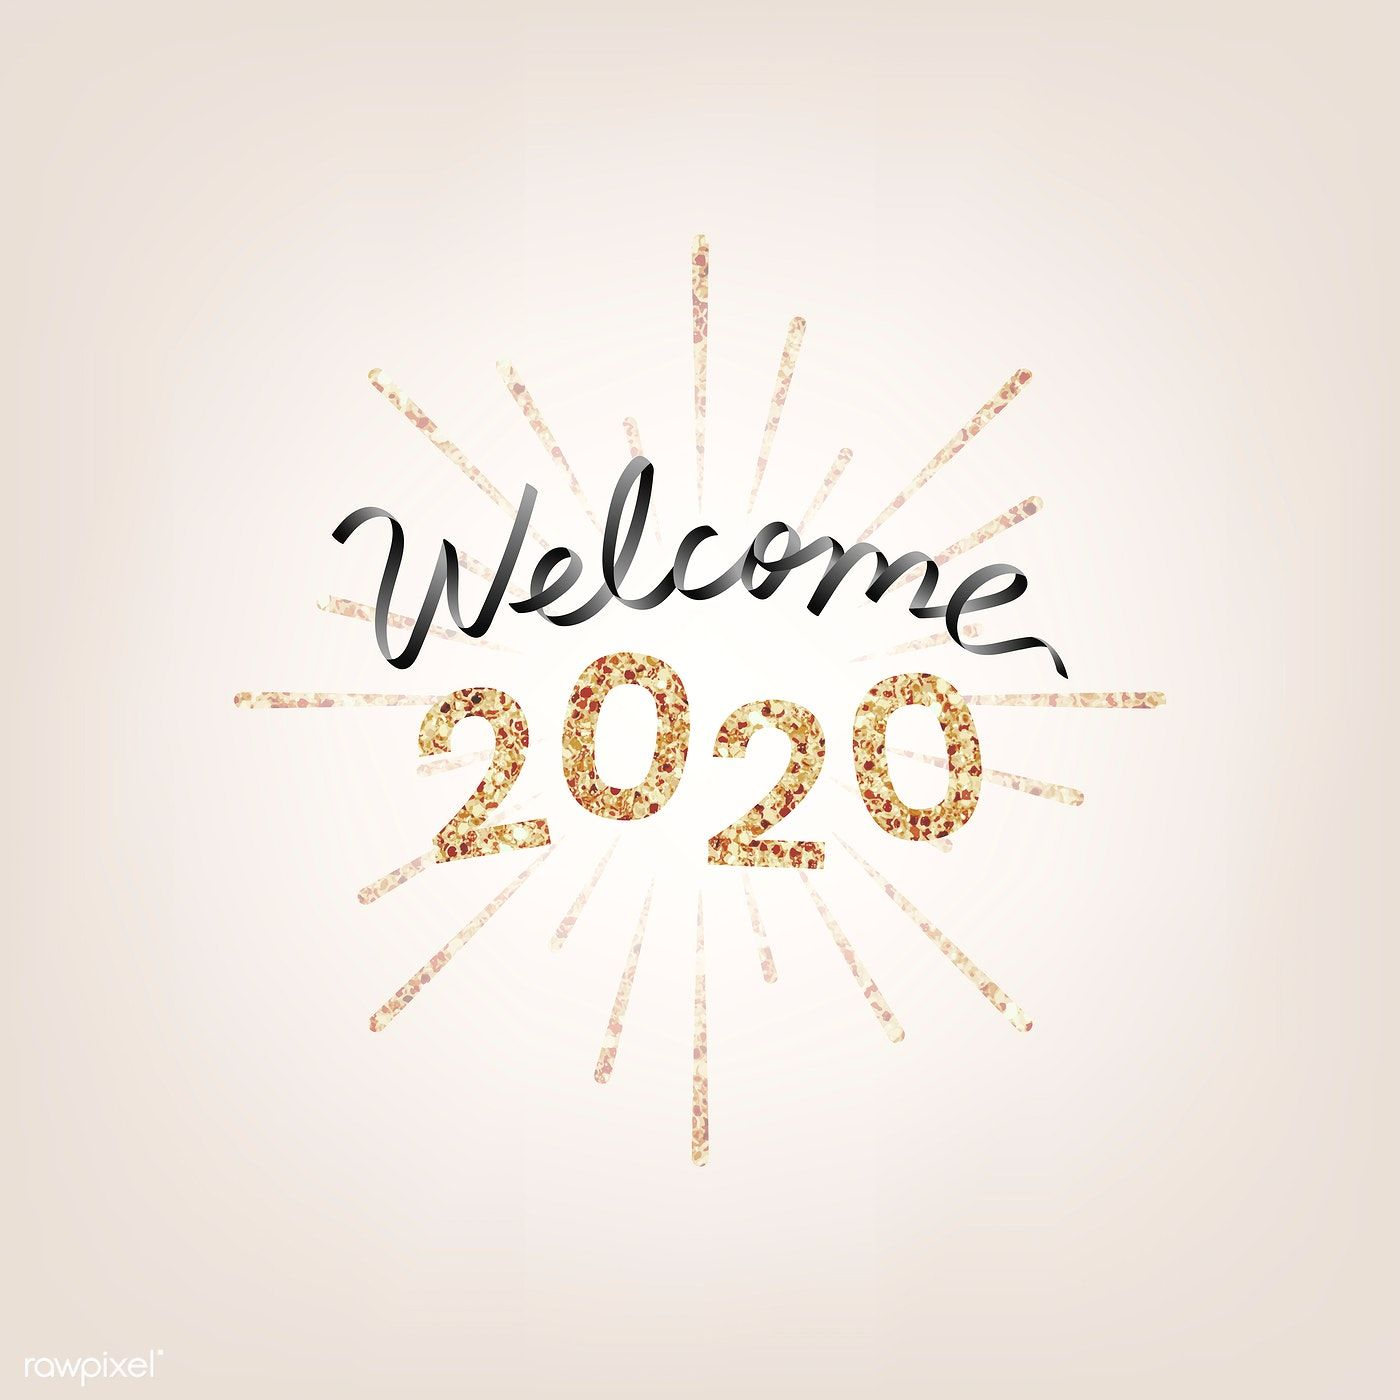 Download free illustration of Happy New Year 2020 typography illustration